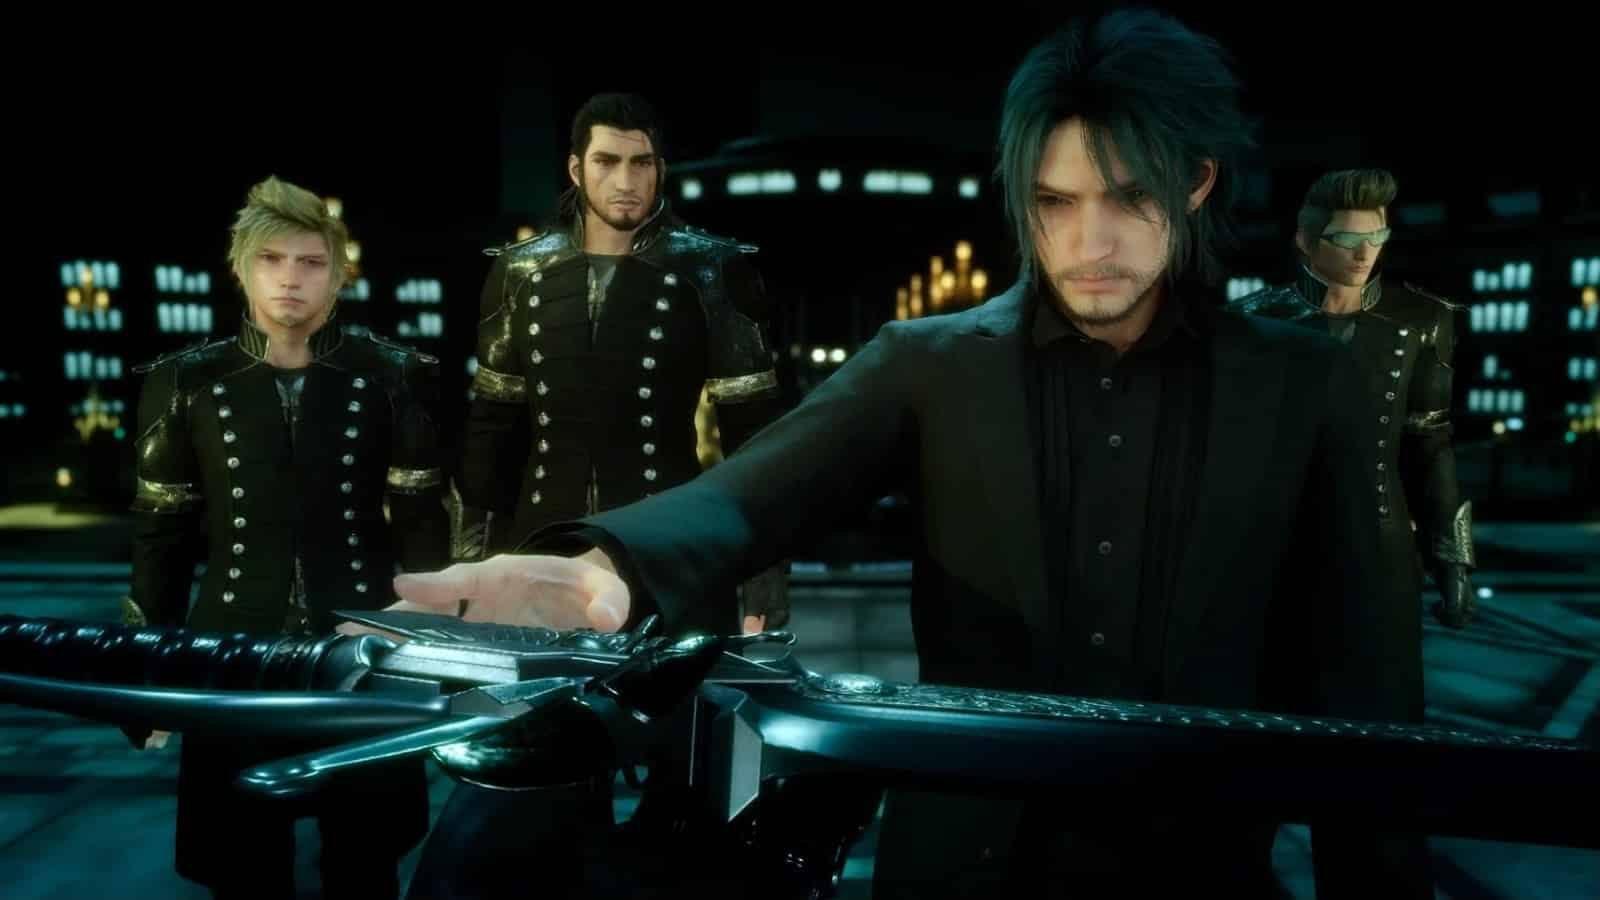 Final Fantasy XV Noctis Lucis Caelum Is Both a God King and a Slave to Fate Noctis Jesus Square Enix myth religion hero